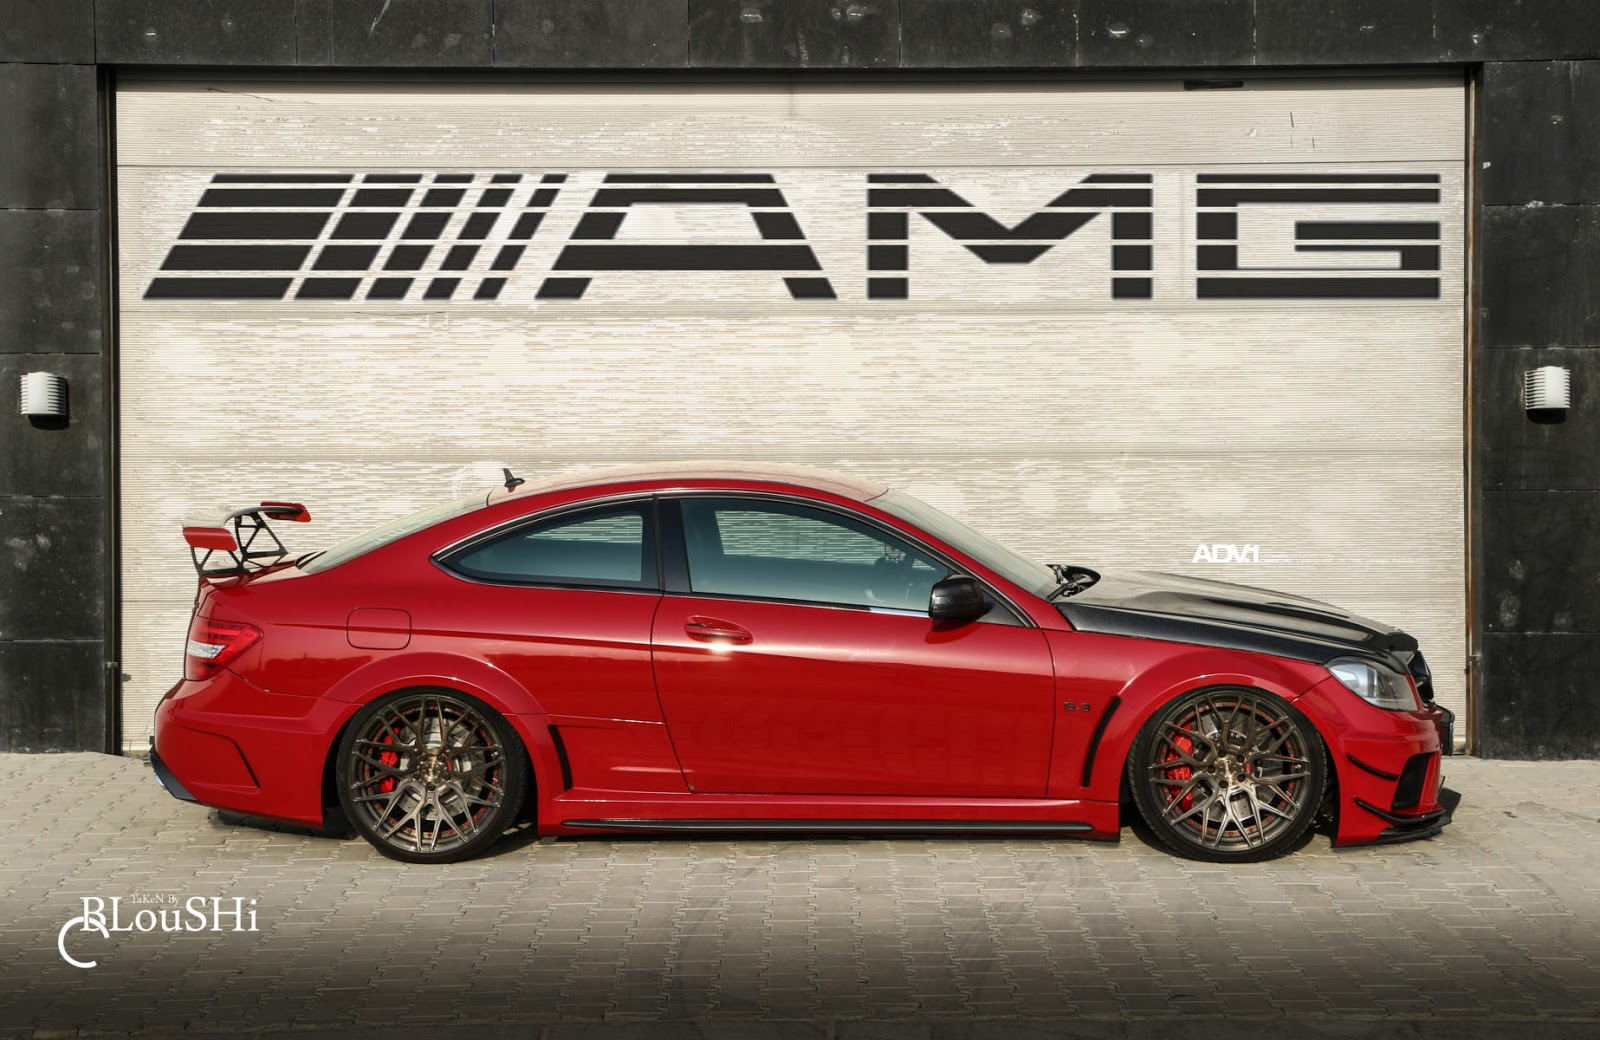 2013 mercedes benz c63 amg black series adv10 0 m v2 wheels benztuning. Black Bedroom Furniture Sets. Home Design Ideas